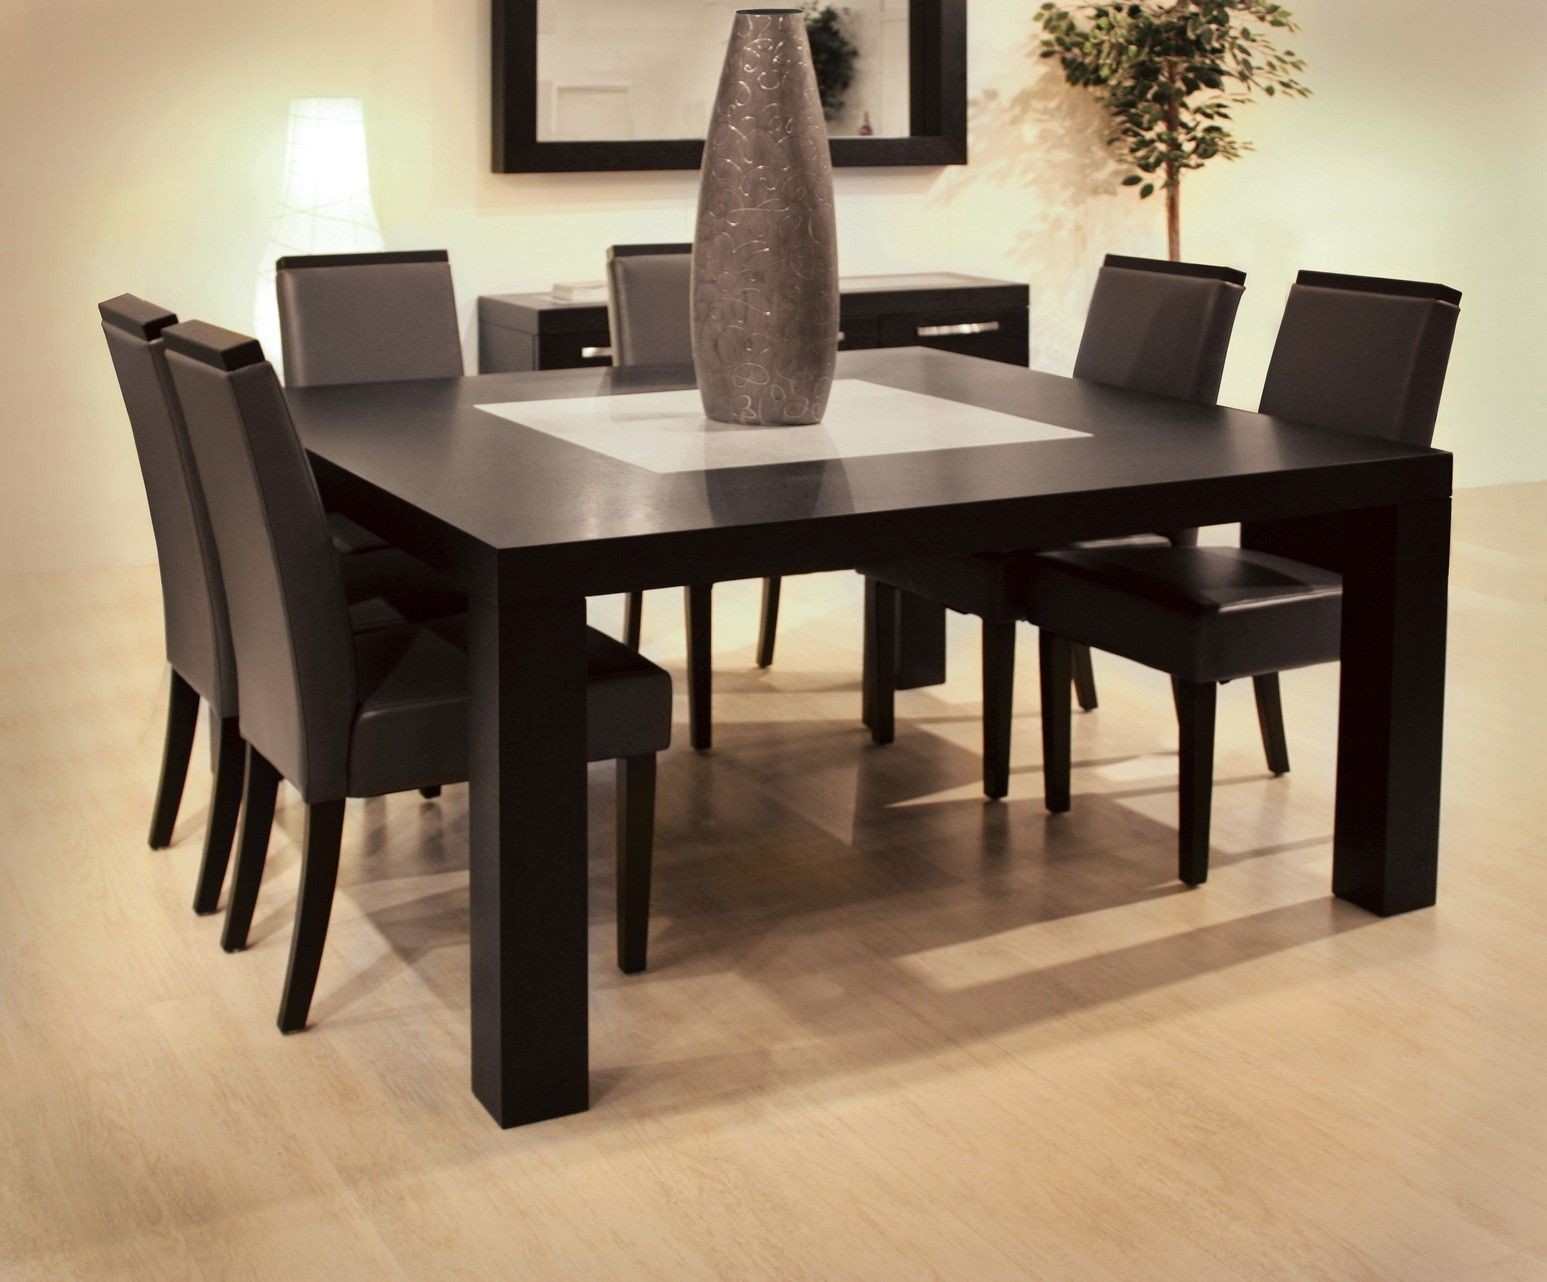 room square dining table - Square Dining Room Table Sets